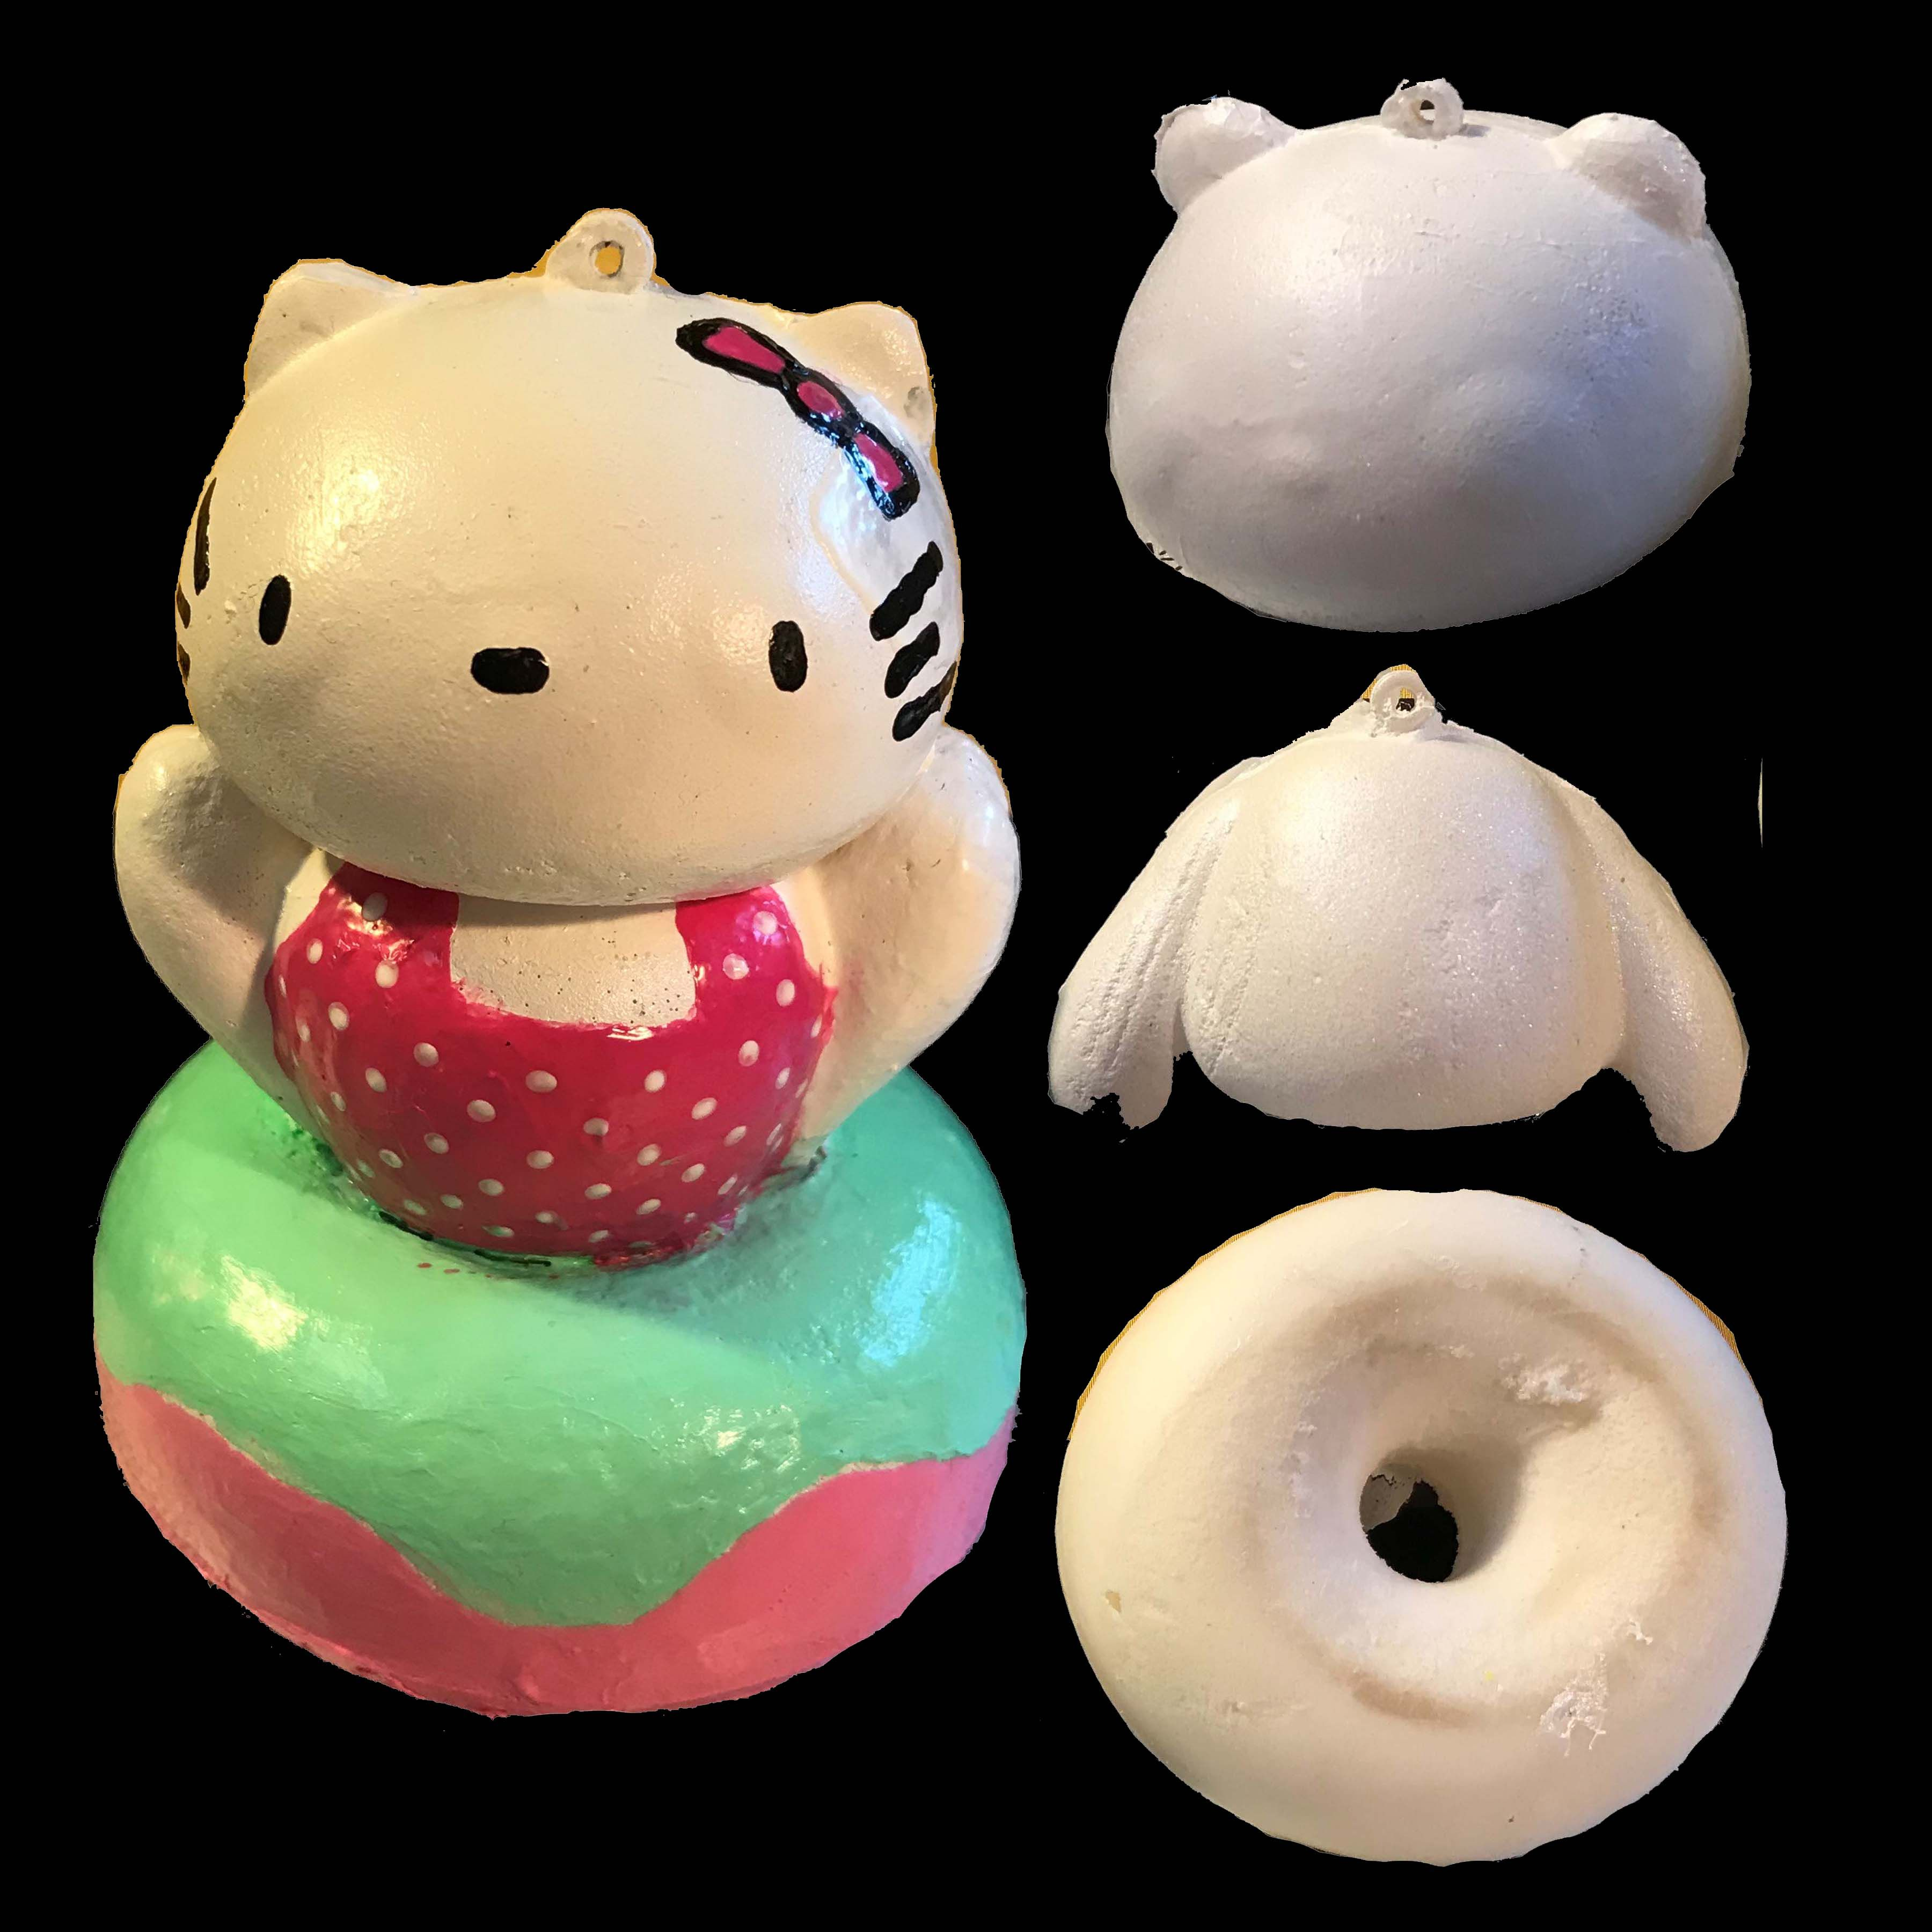 Pin by Erin Newman on Erin's Creations Squishies